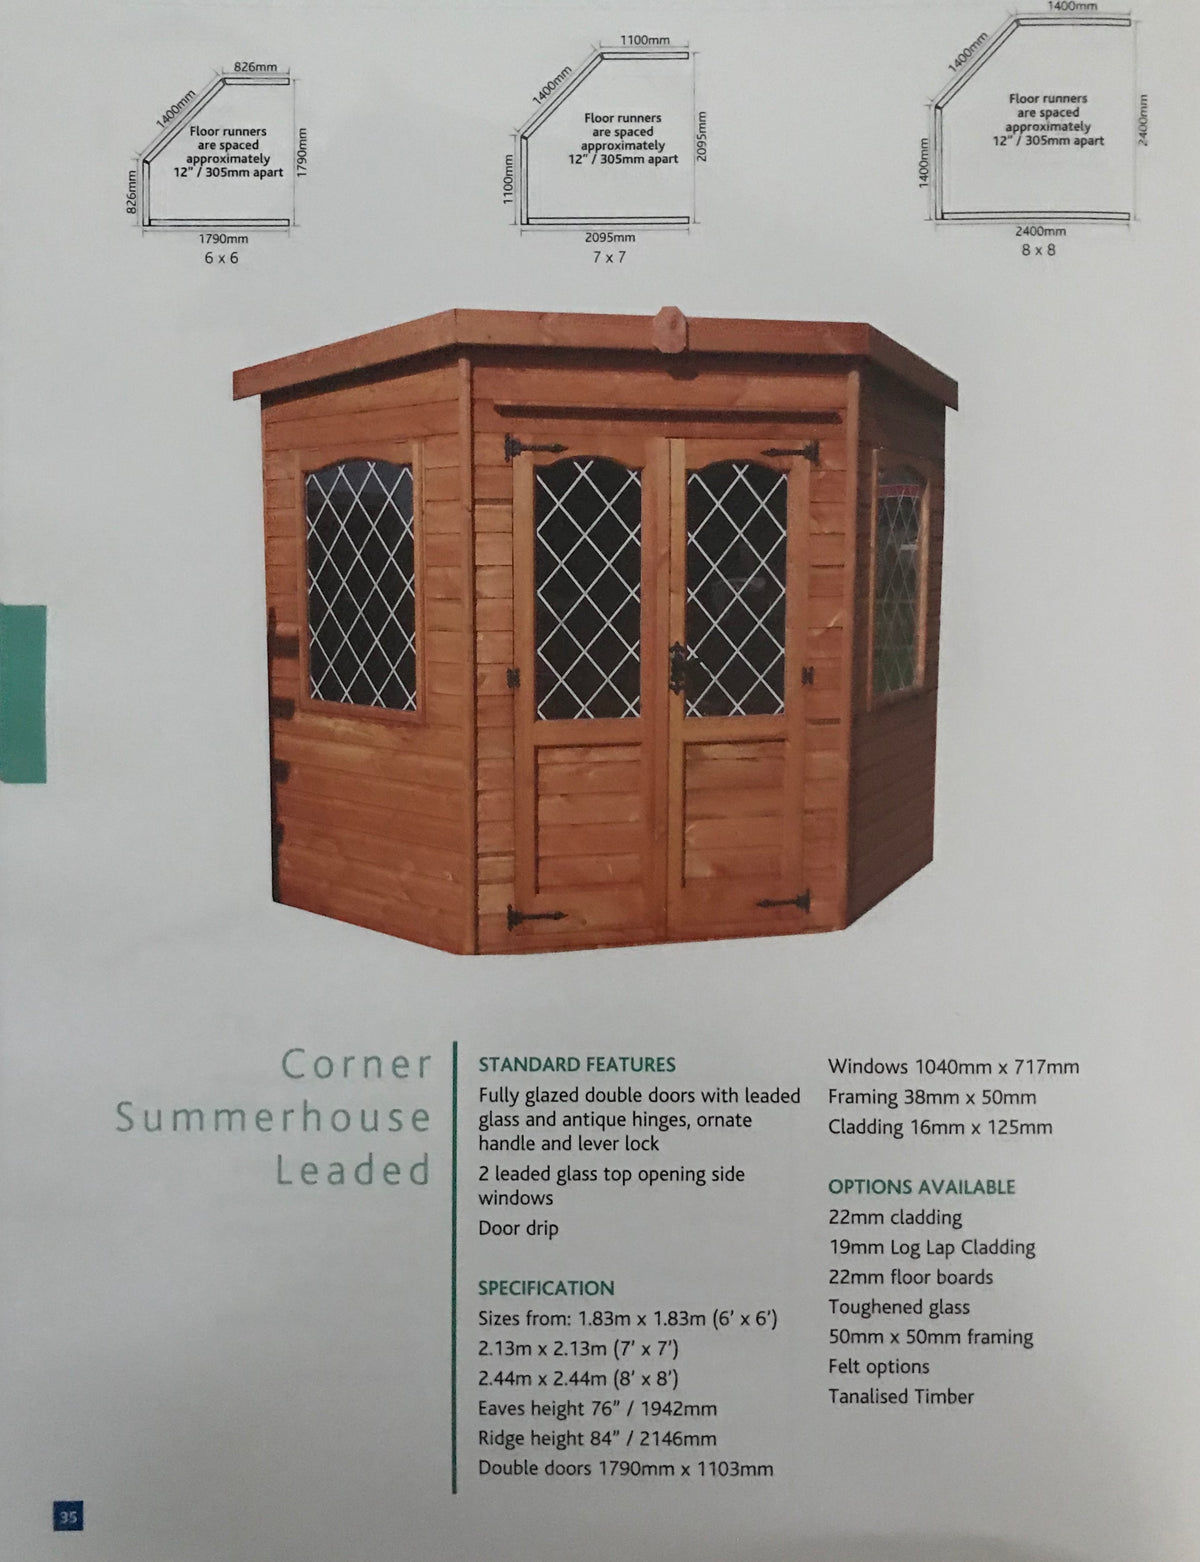 Corner Summerhouse Leaded